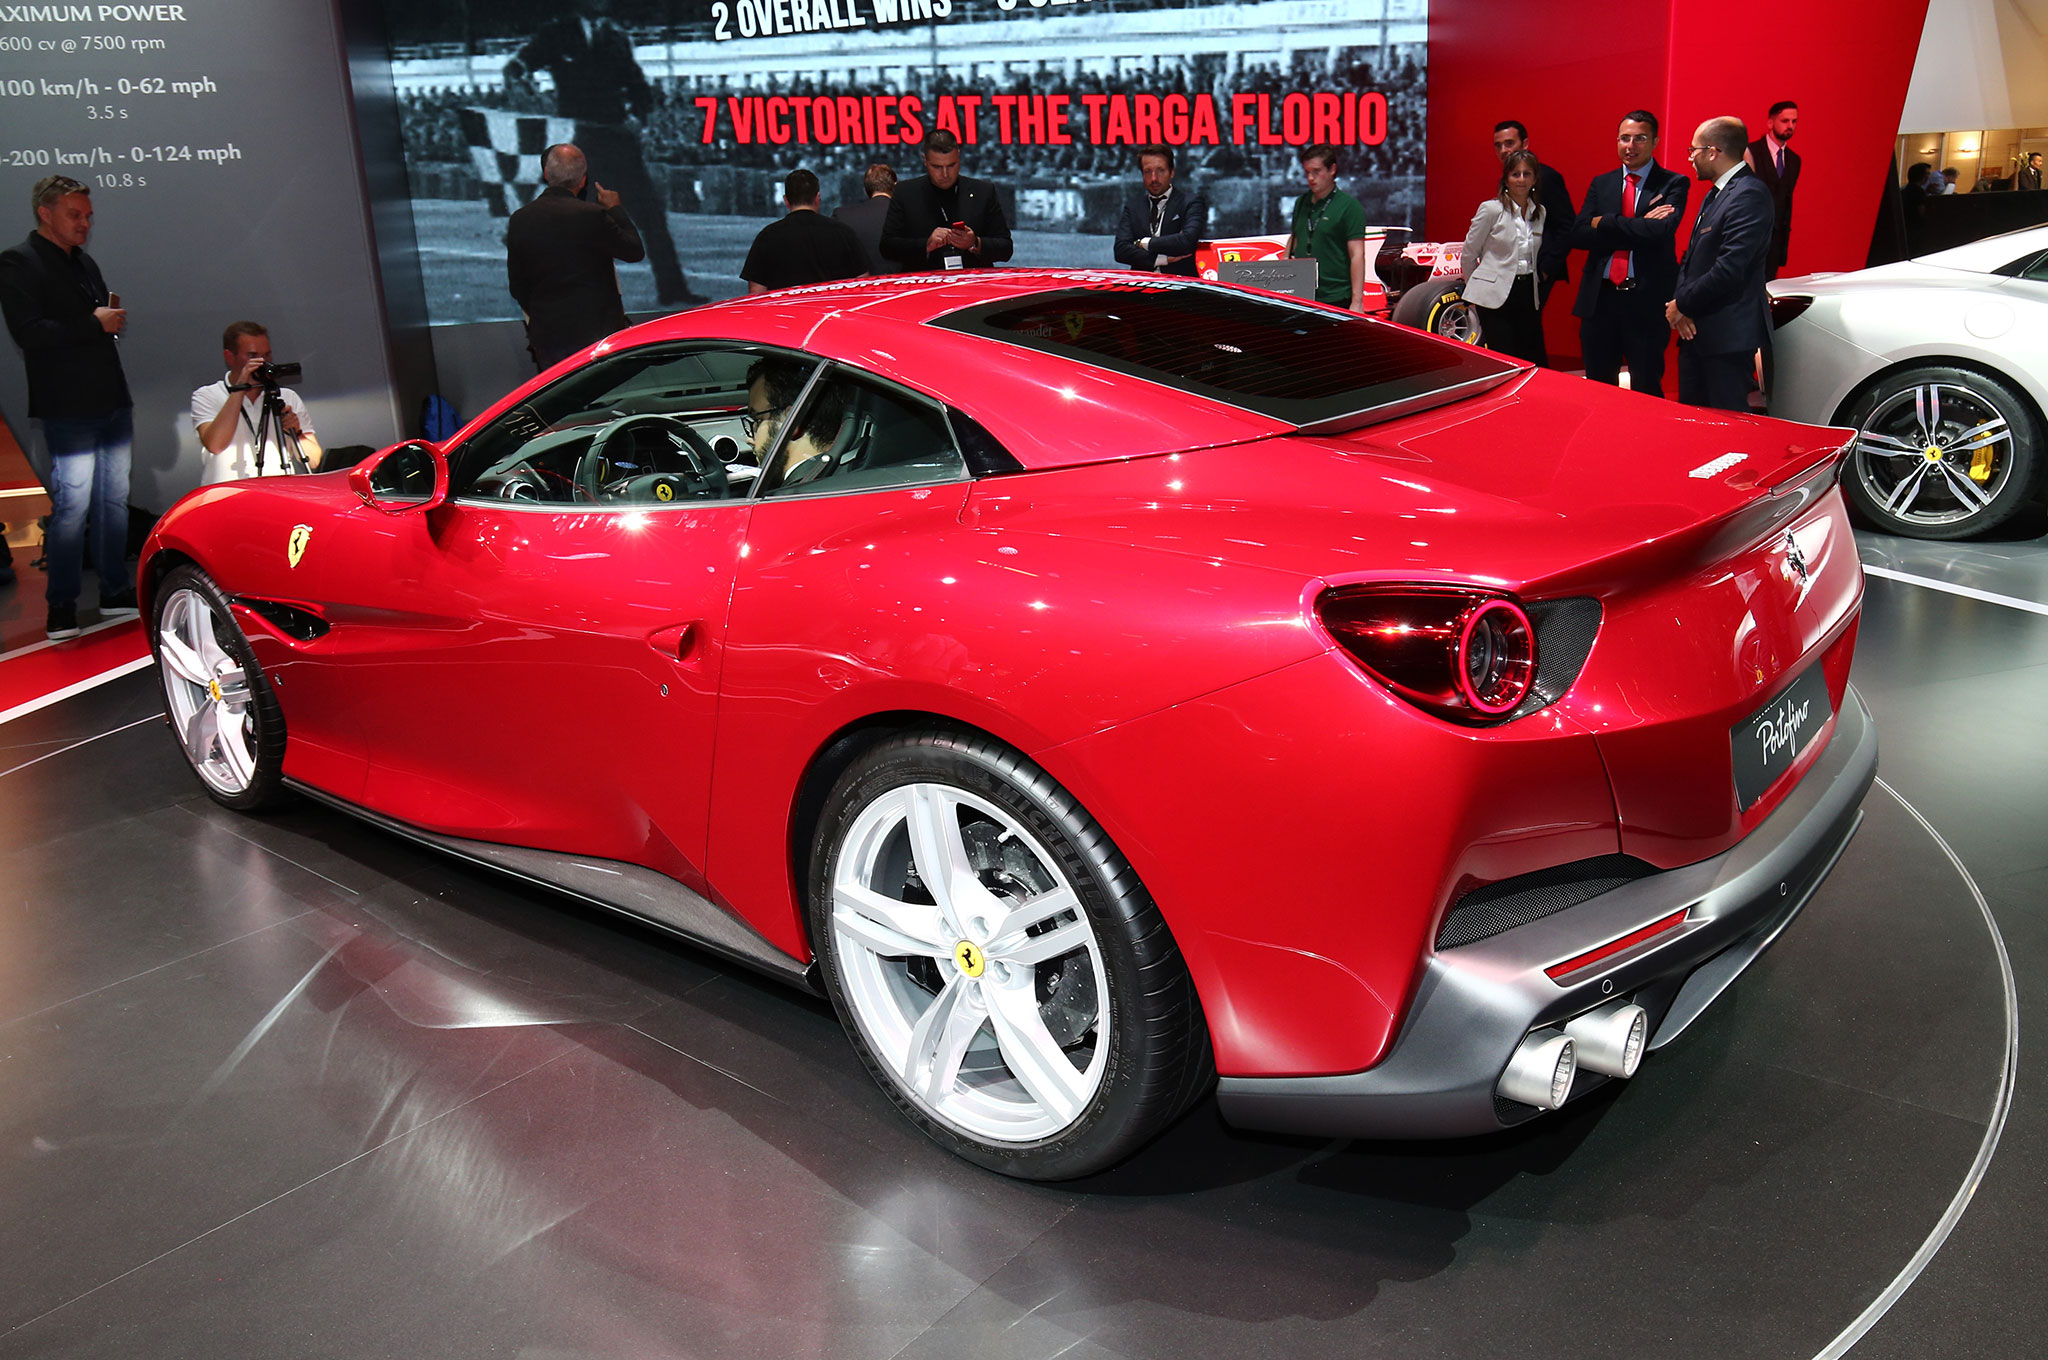 Ferrari-Portofino-in-Frankfurt-rear-side-view.jpg